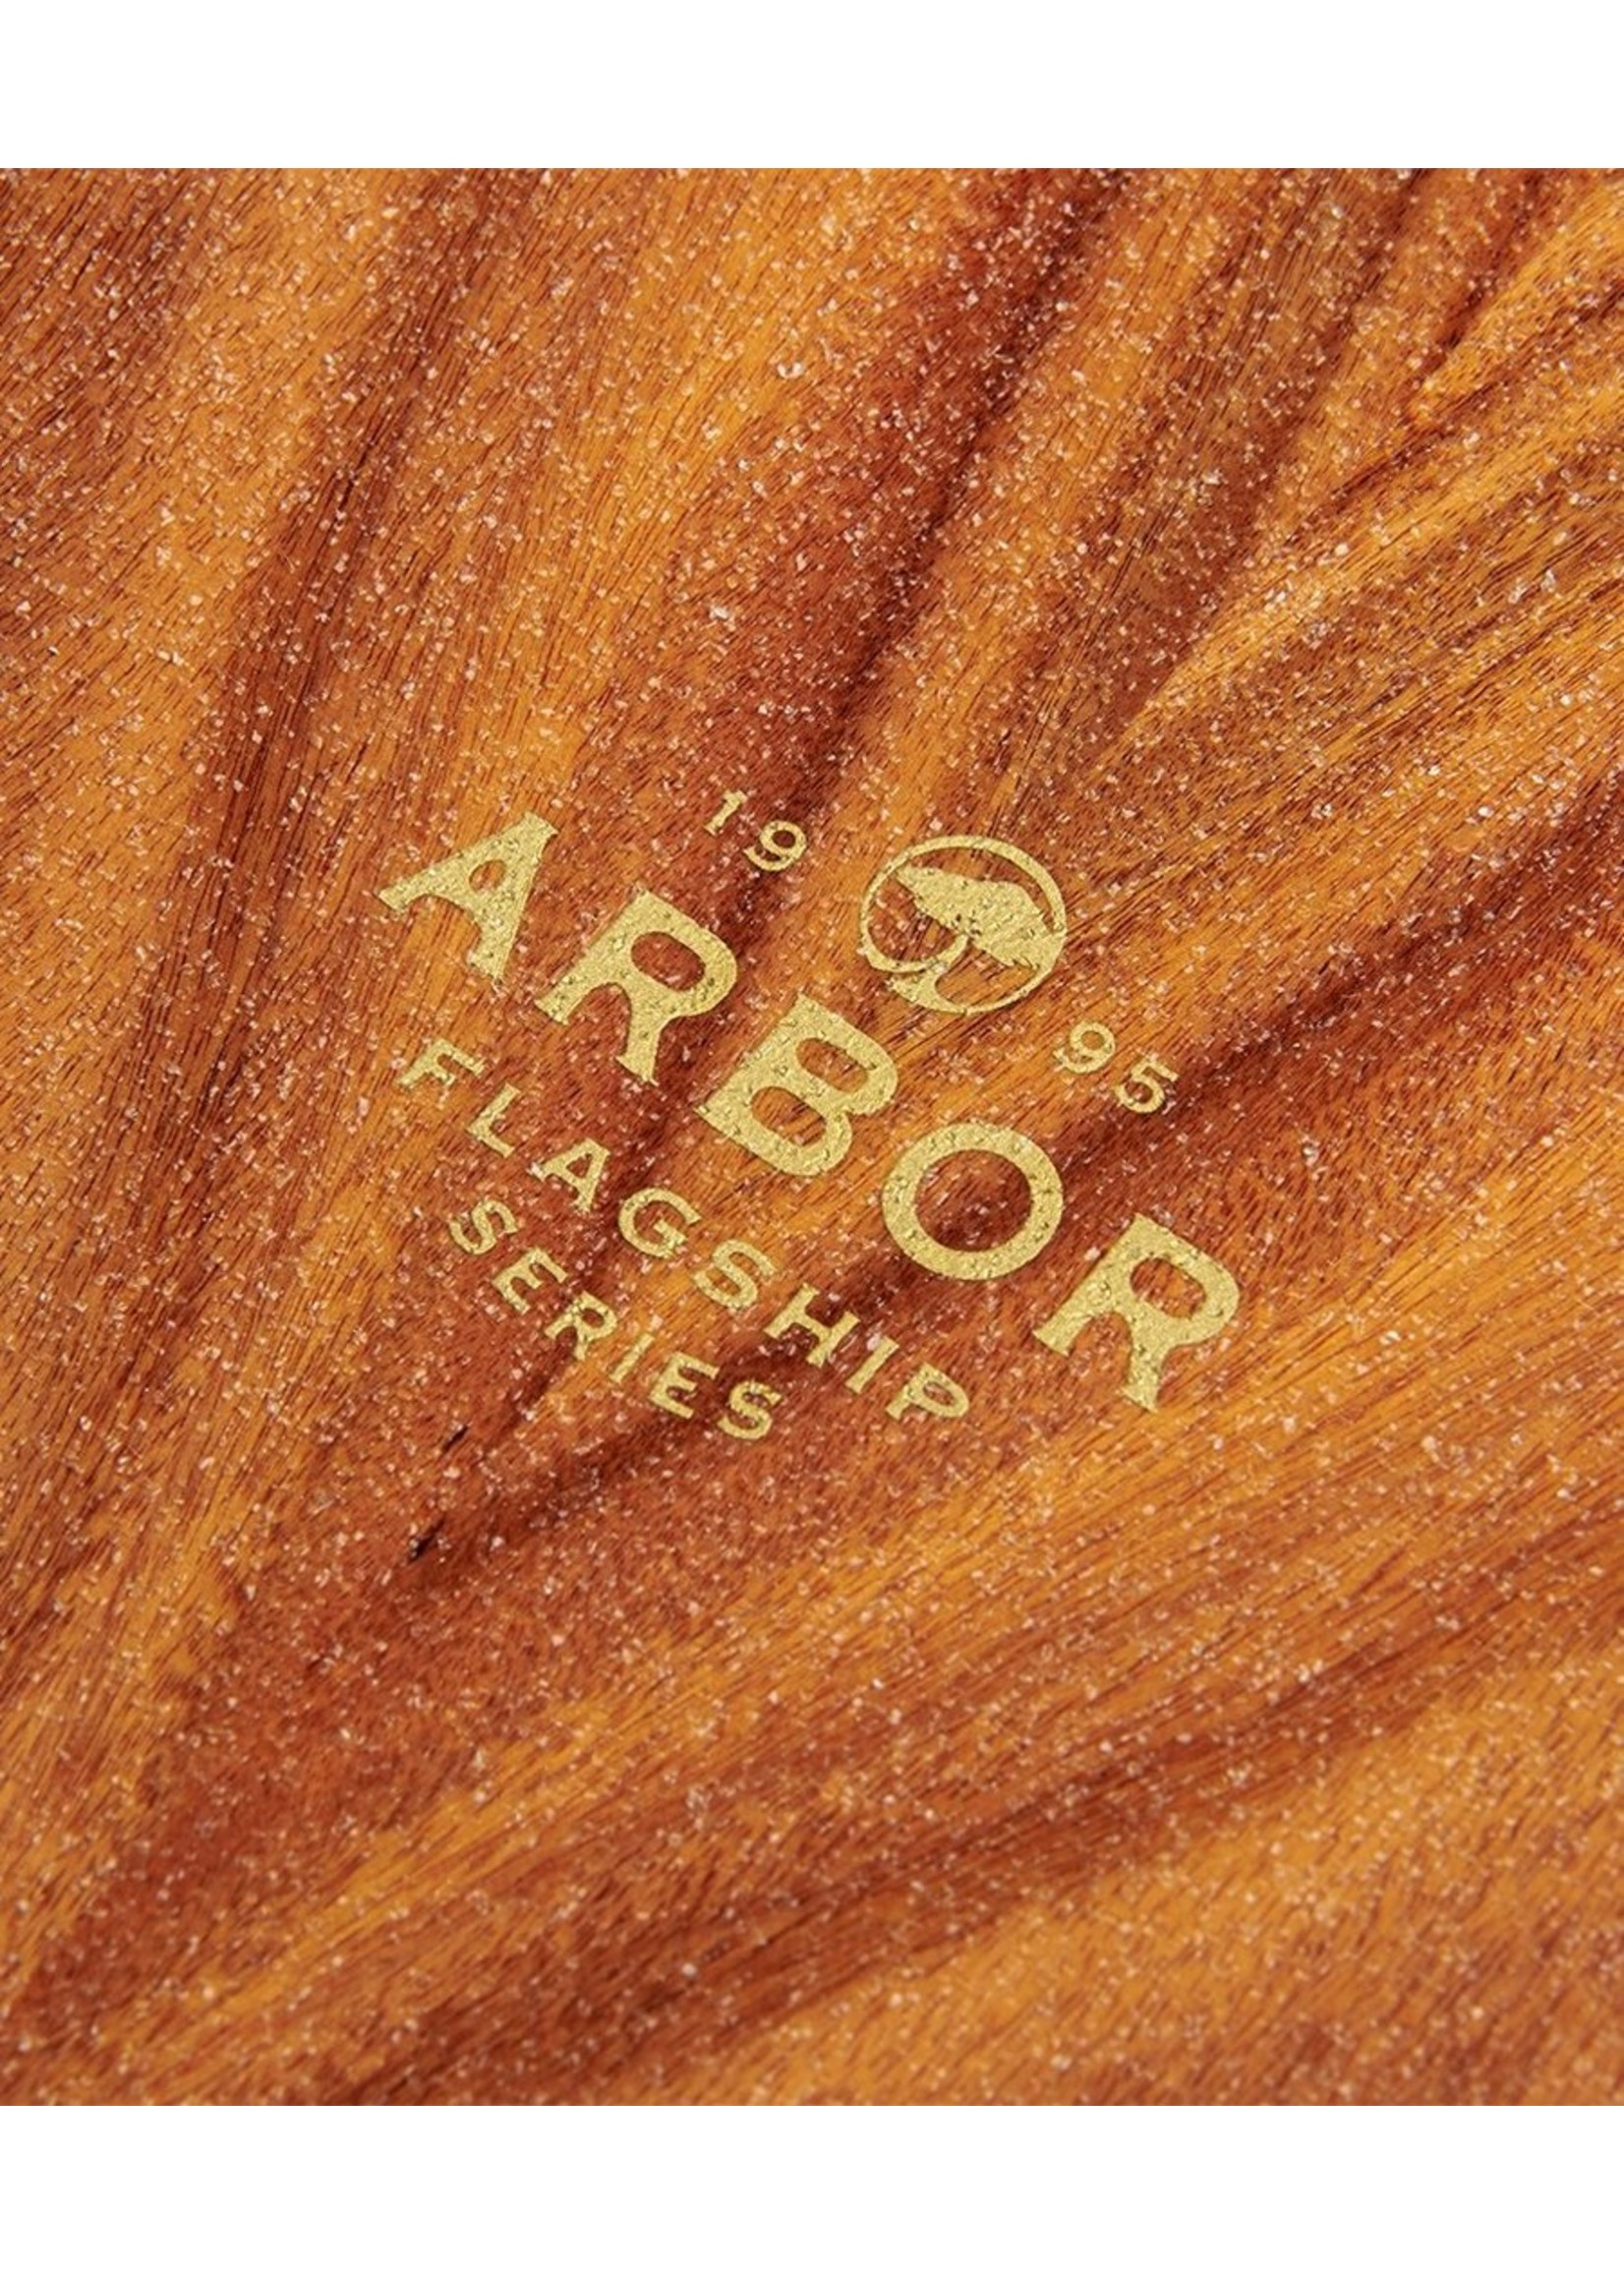 Arbor FLAGSHIP 37in